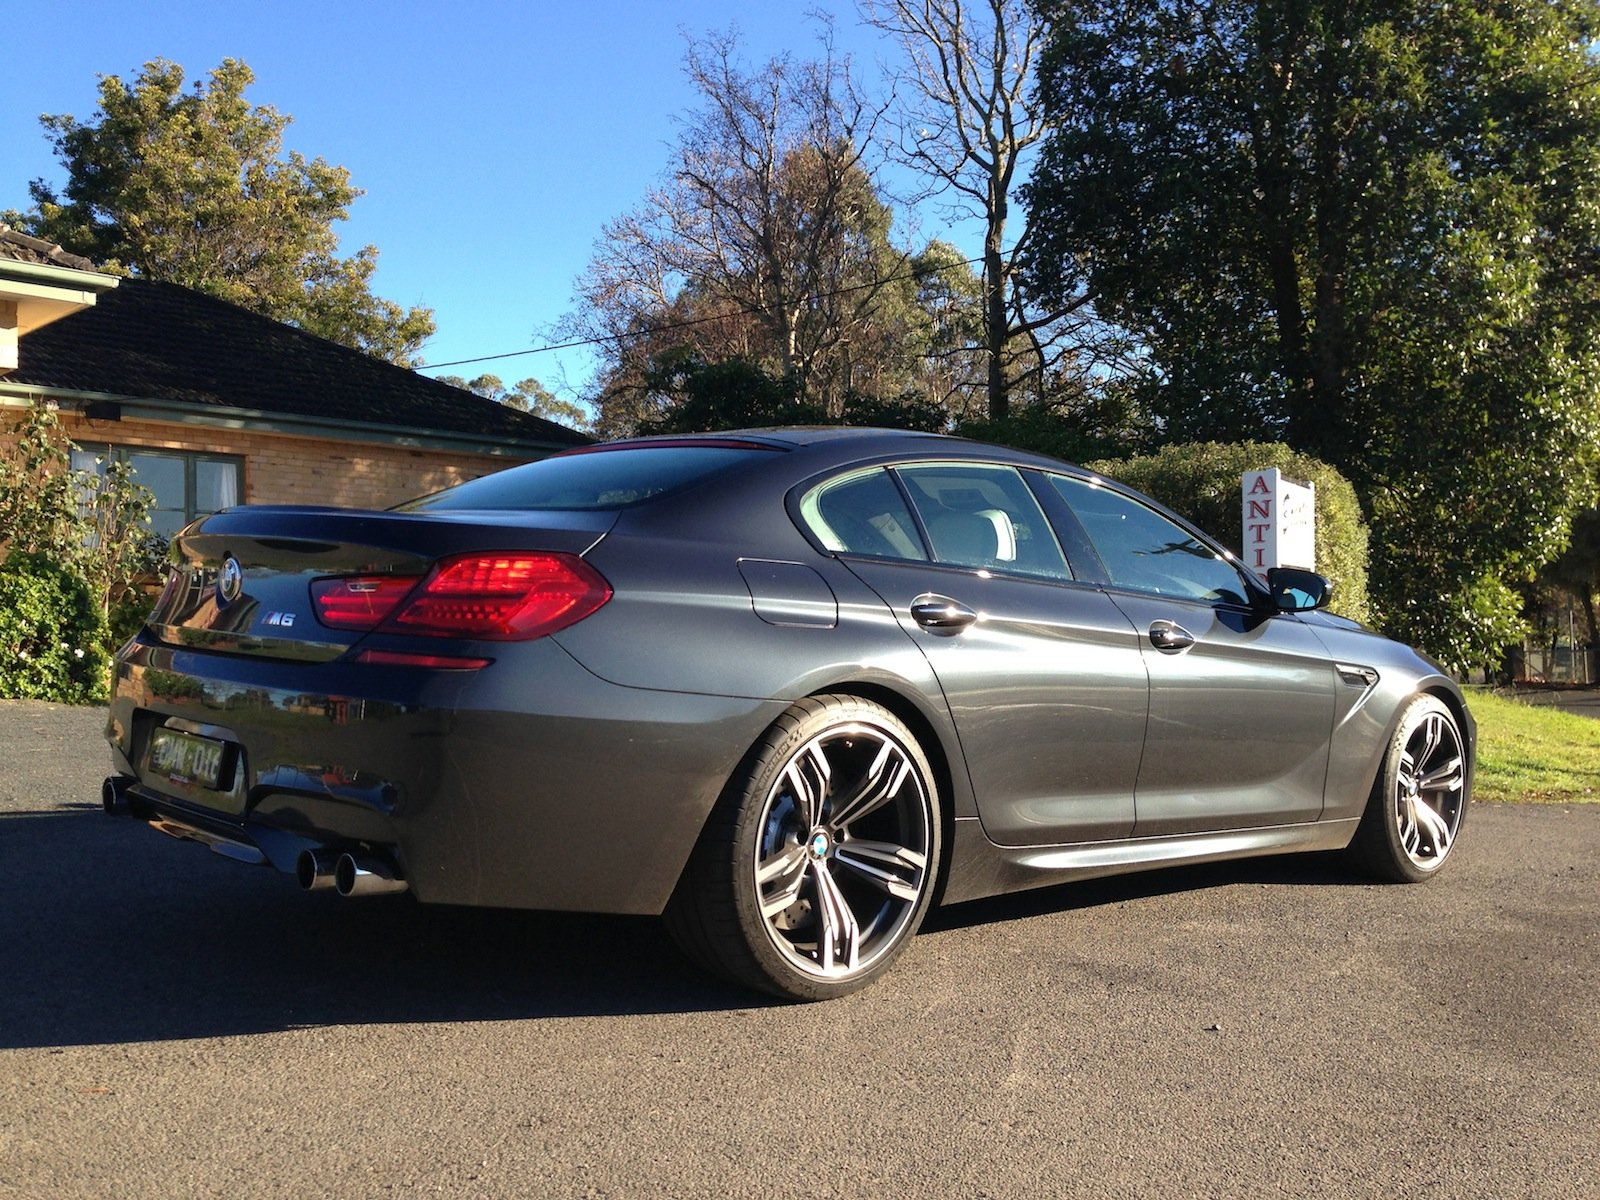 bmw m6 gran coupe review photos caradvice. Black Bedroom Furniture Sets. Home Design Ideas